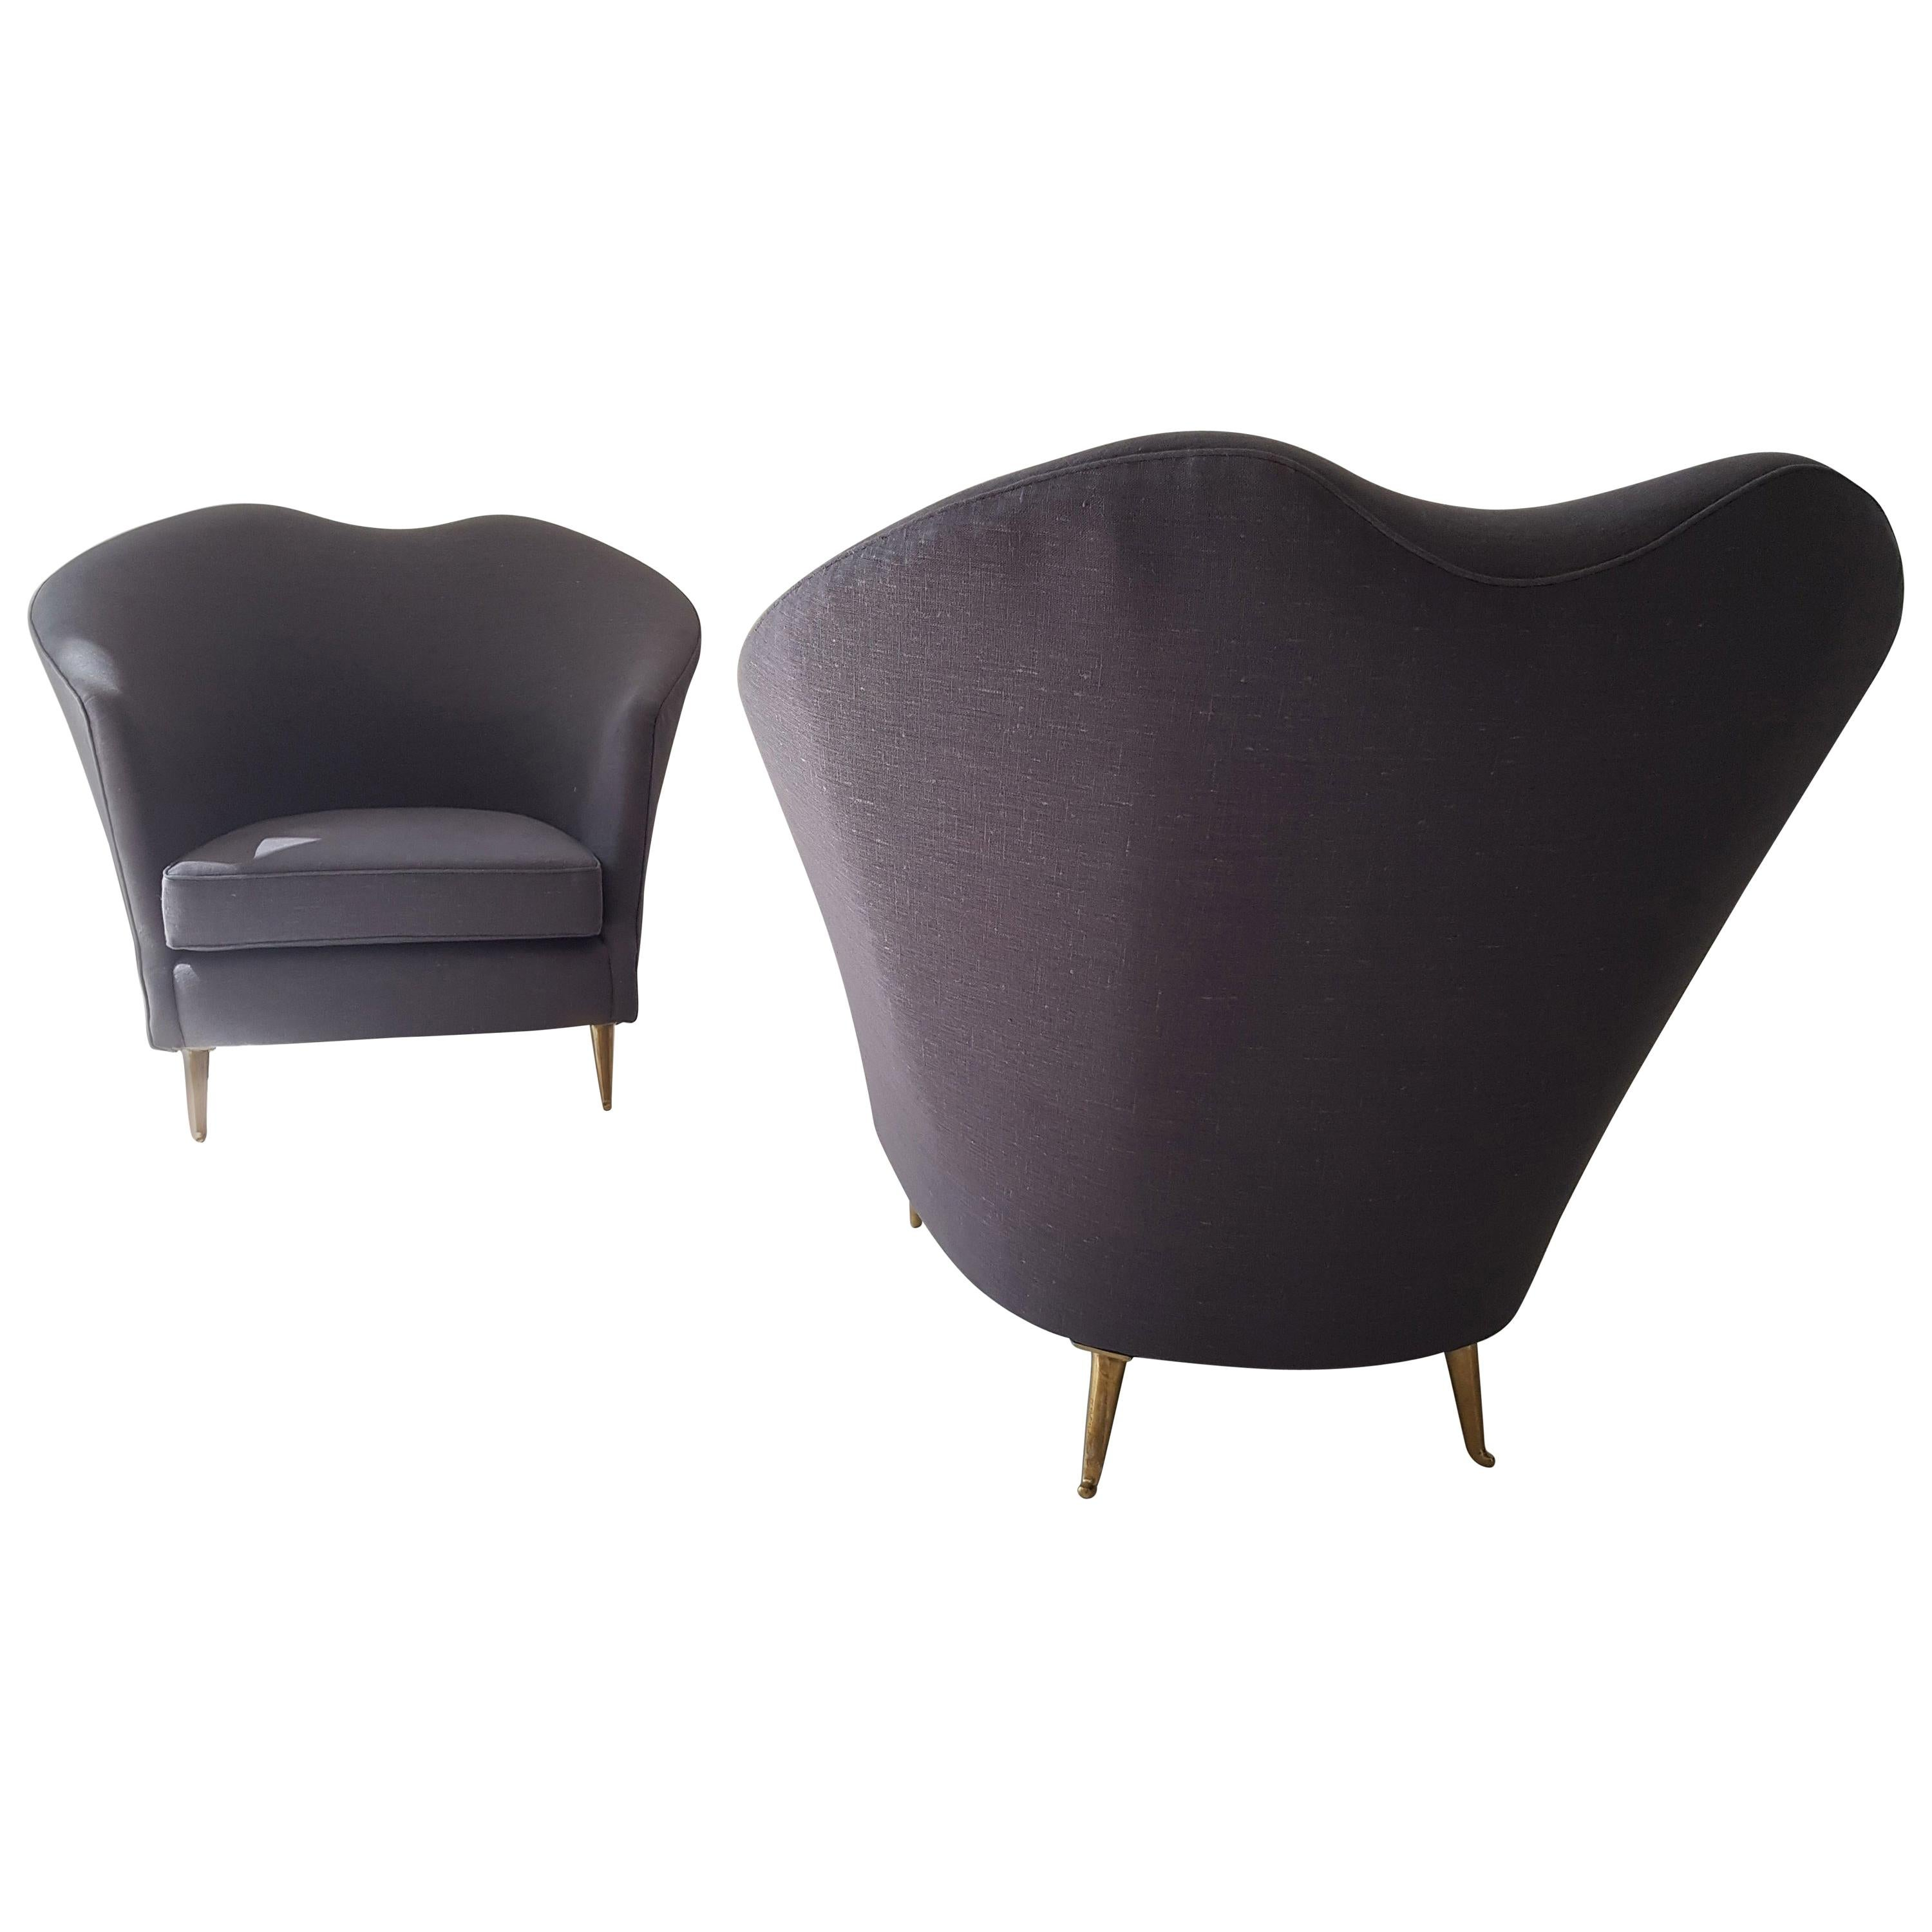 Mid-Century Modern Pair of Italian Armchairs by Cesare Lacca